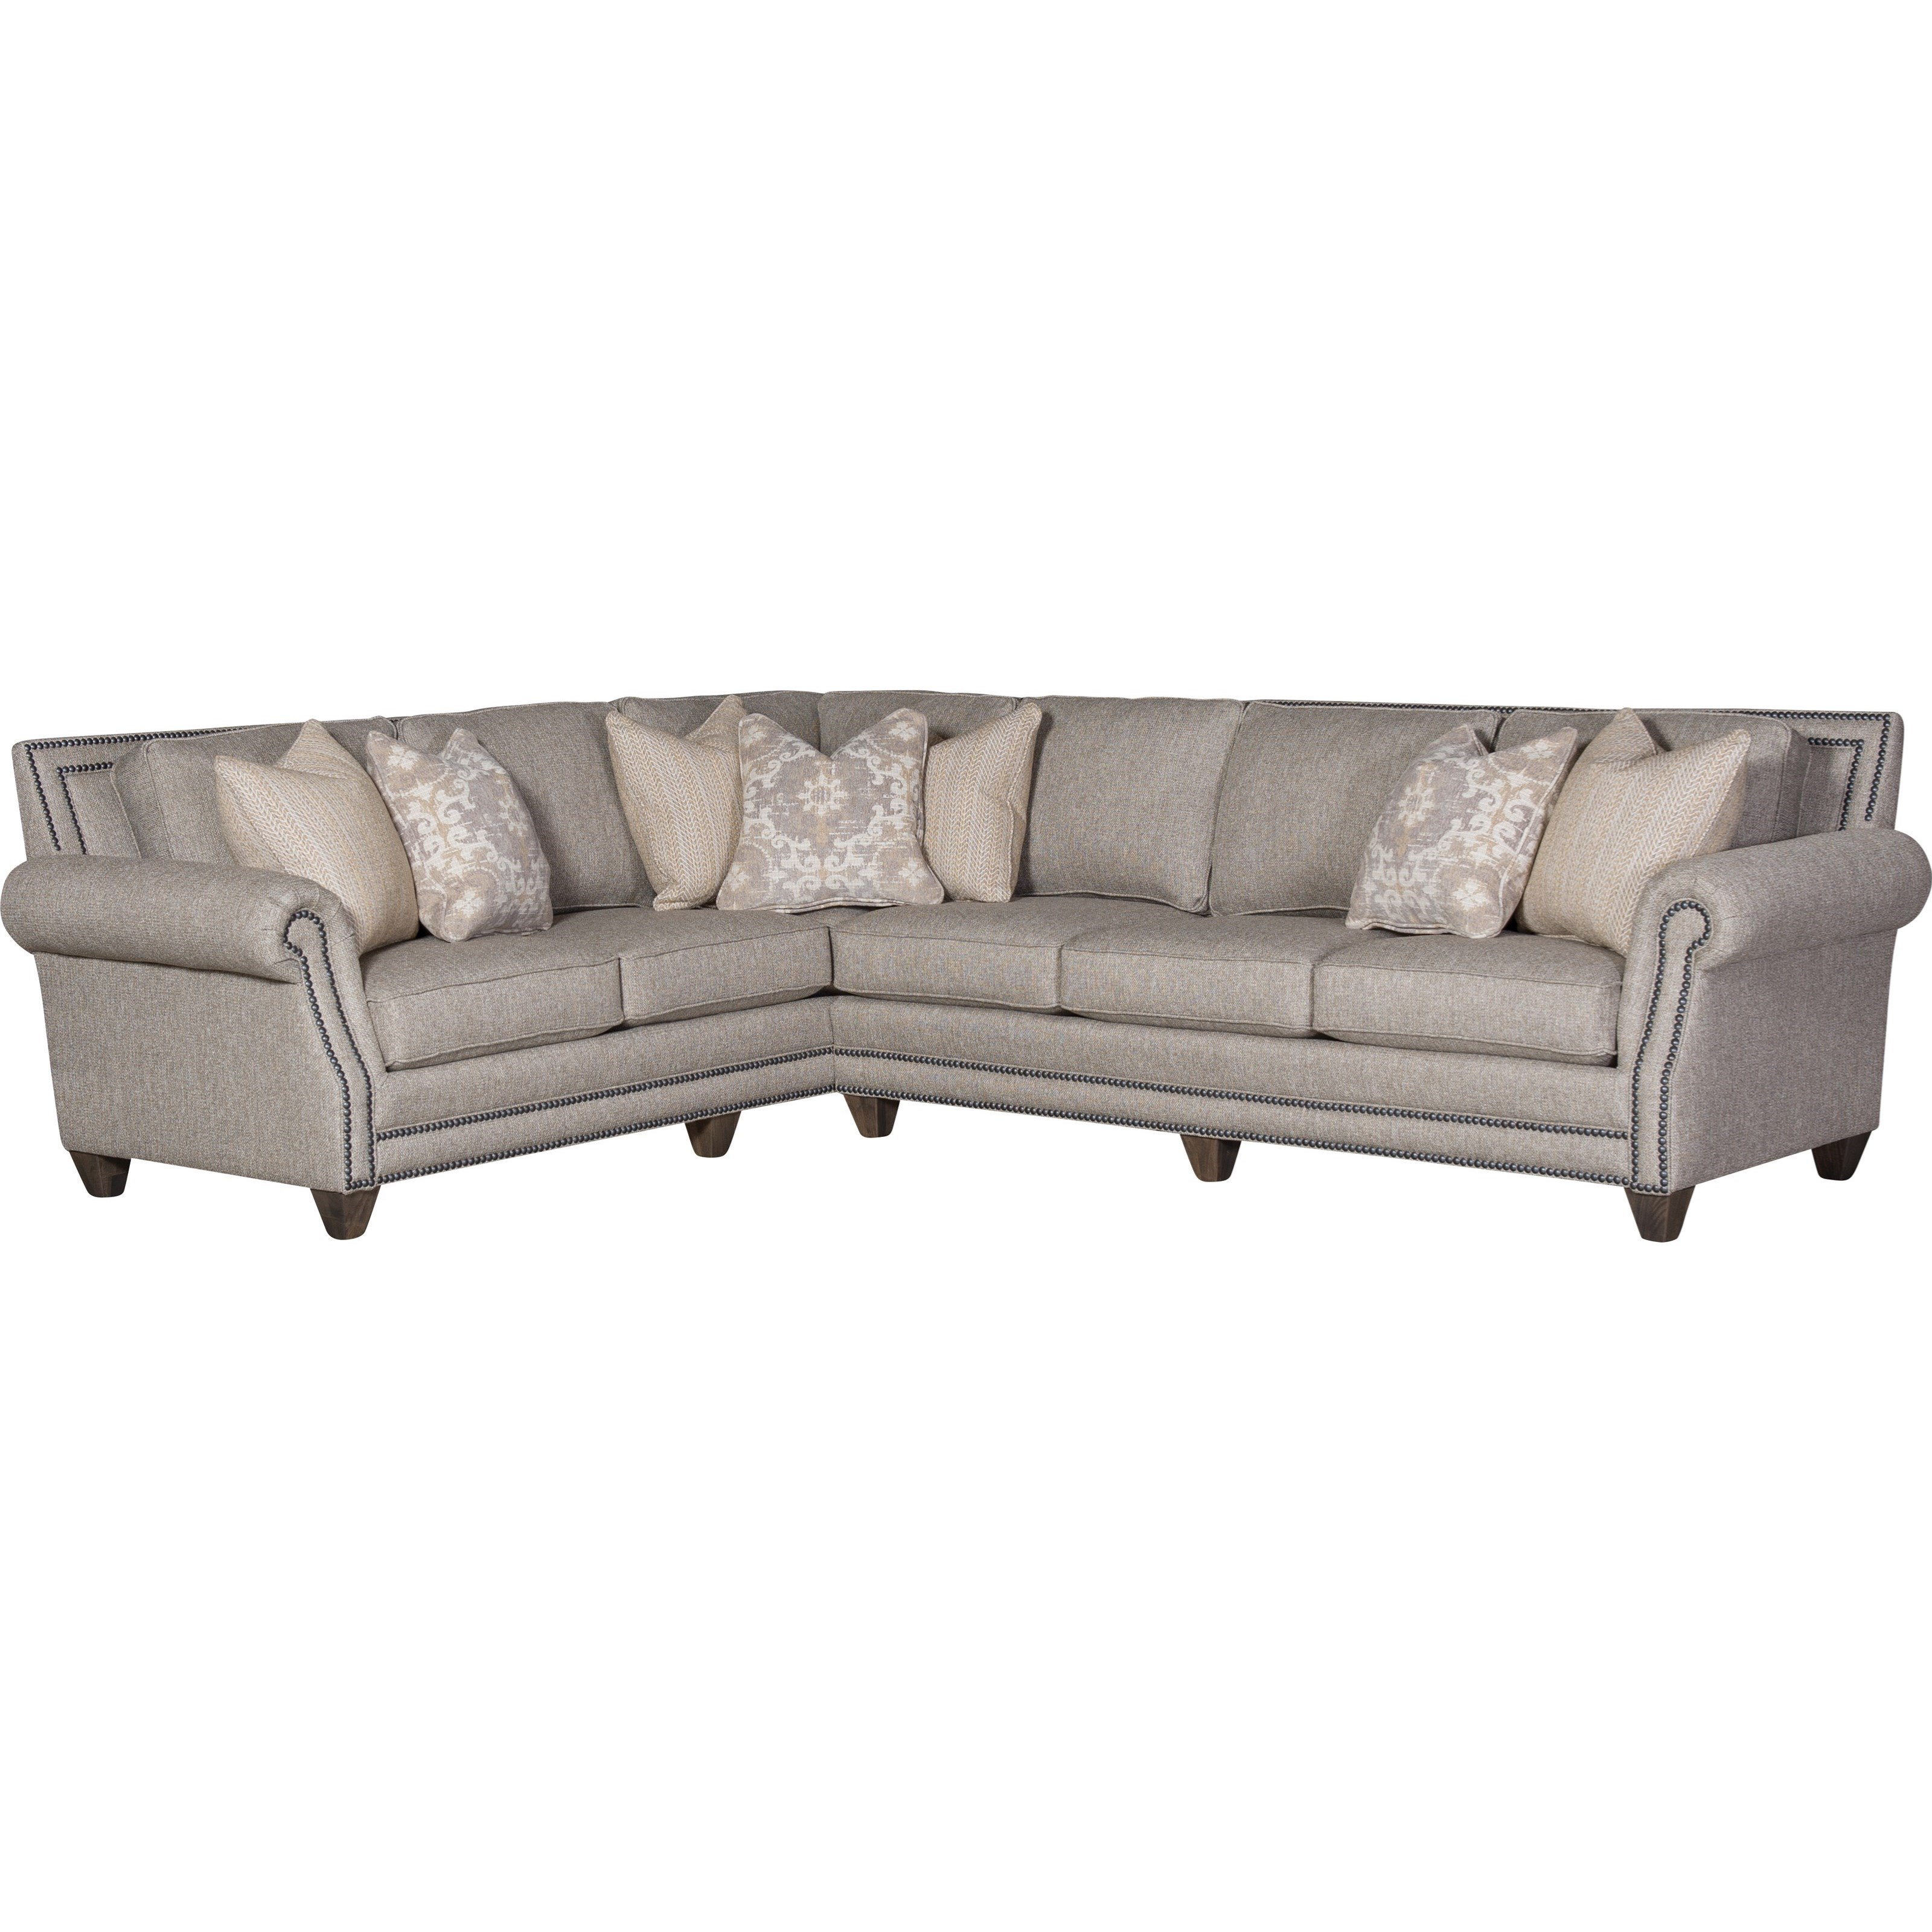 9000 2-Piece Sectional  by Mayo at Wilcox Furniture